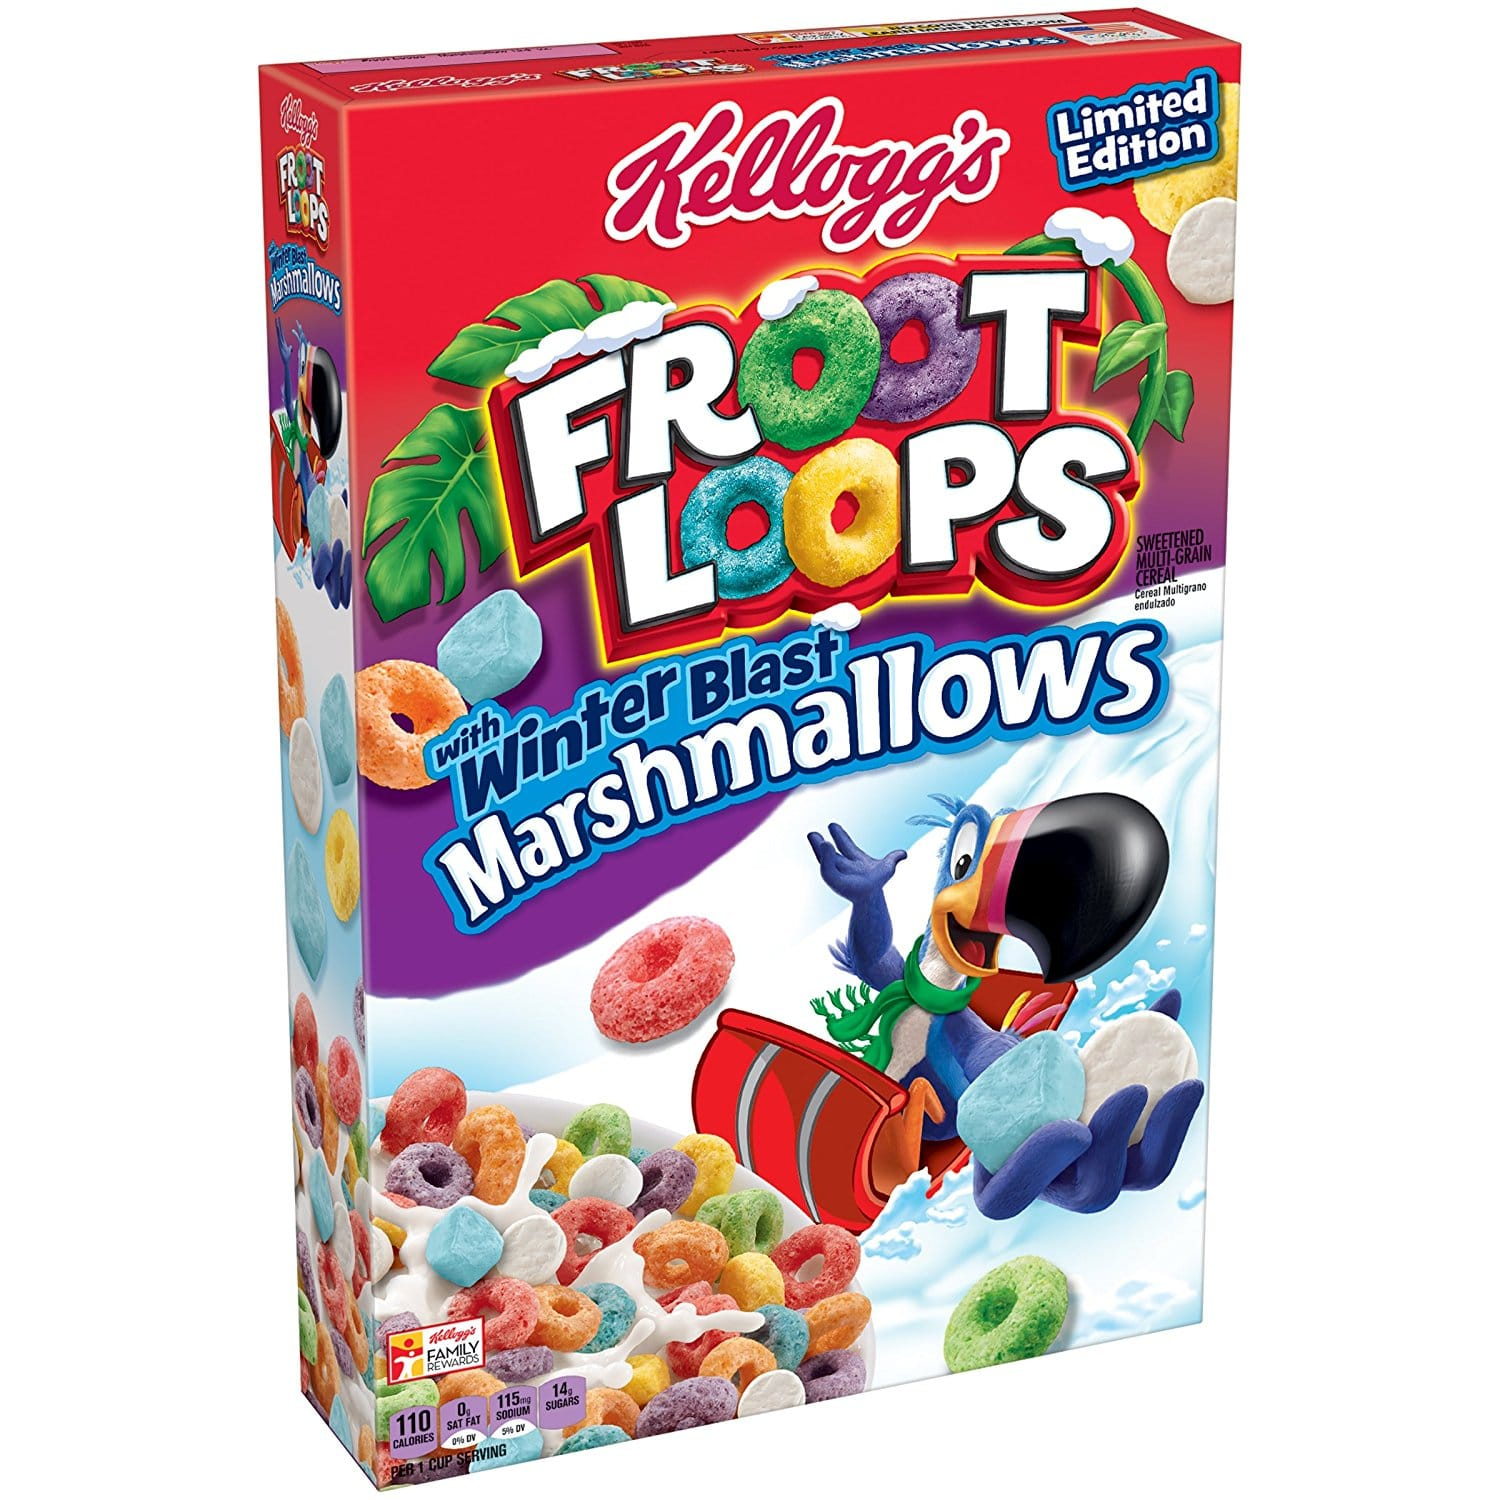 Prime Pantry: Kellogg's Froot Loops Cereal, Marshmallow, 12.6 Ounce $0.99